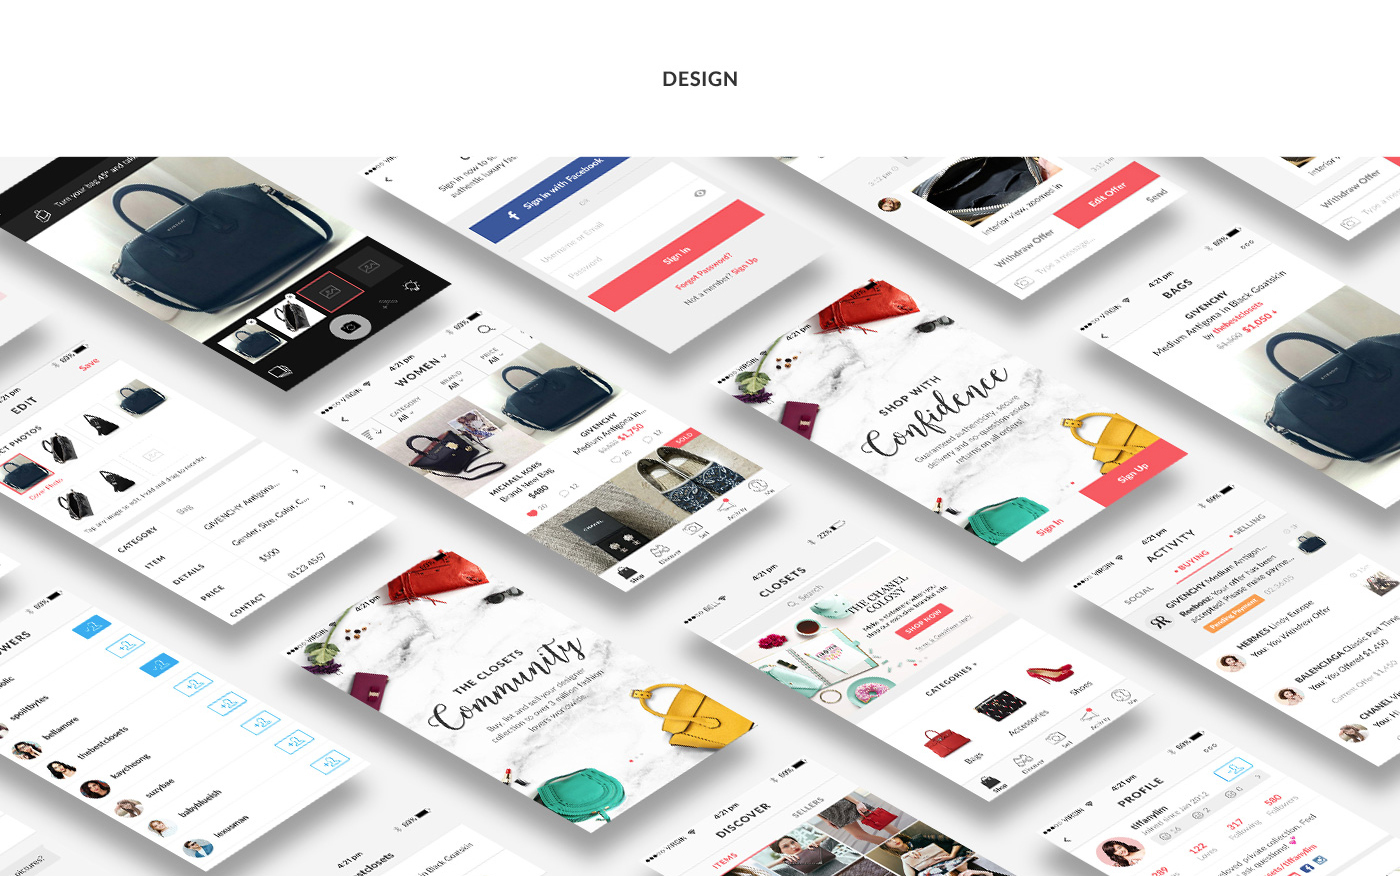 UI,ux,e-commerce,shopping app,user interface,user experience,Website,C2C,ios,android